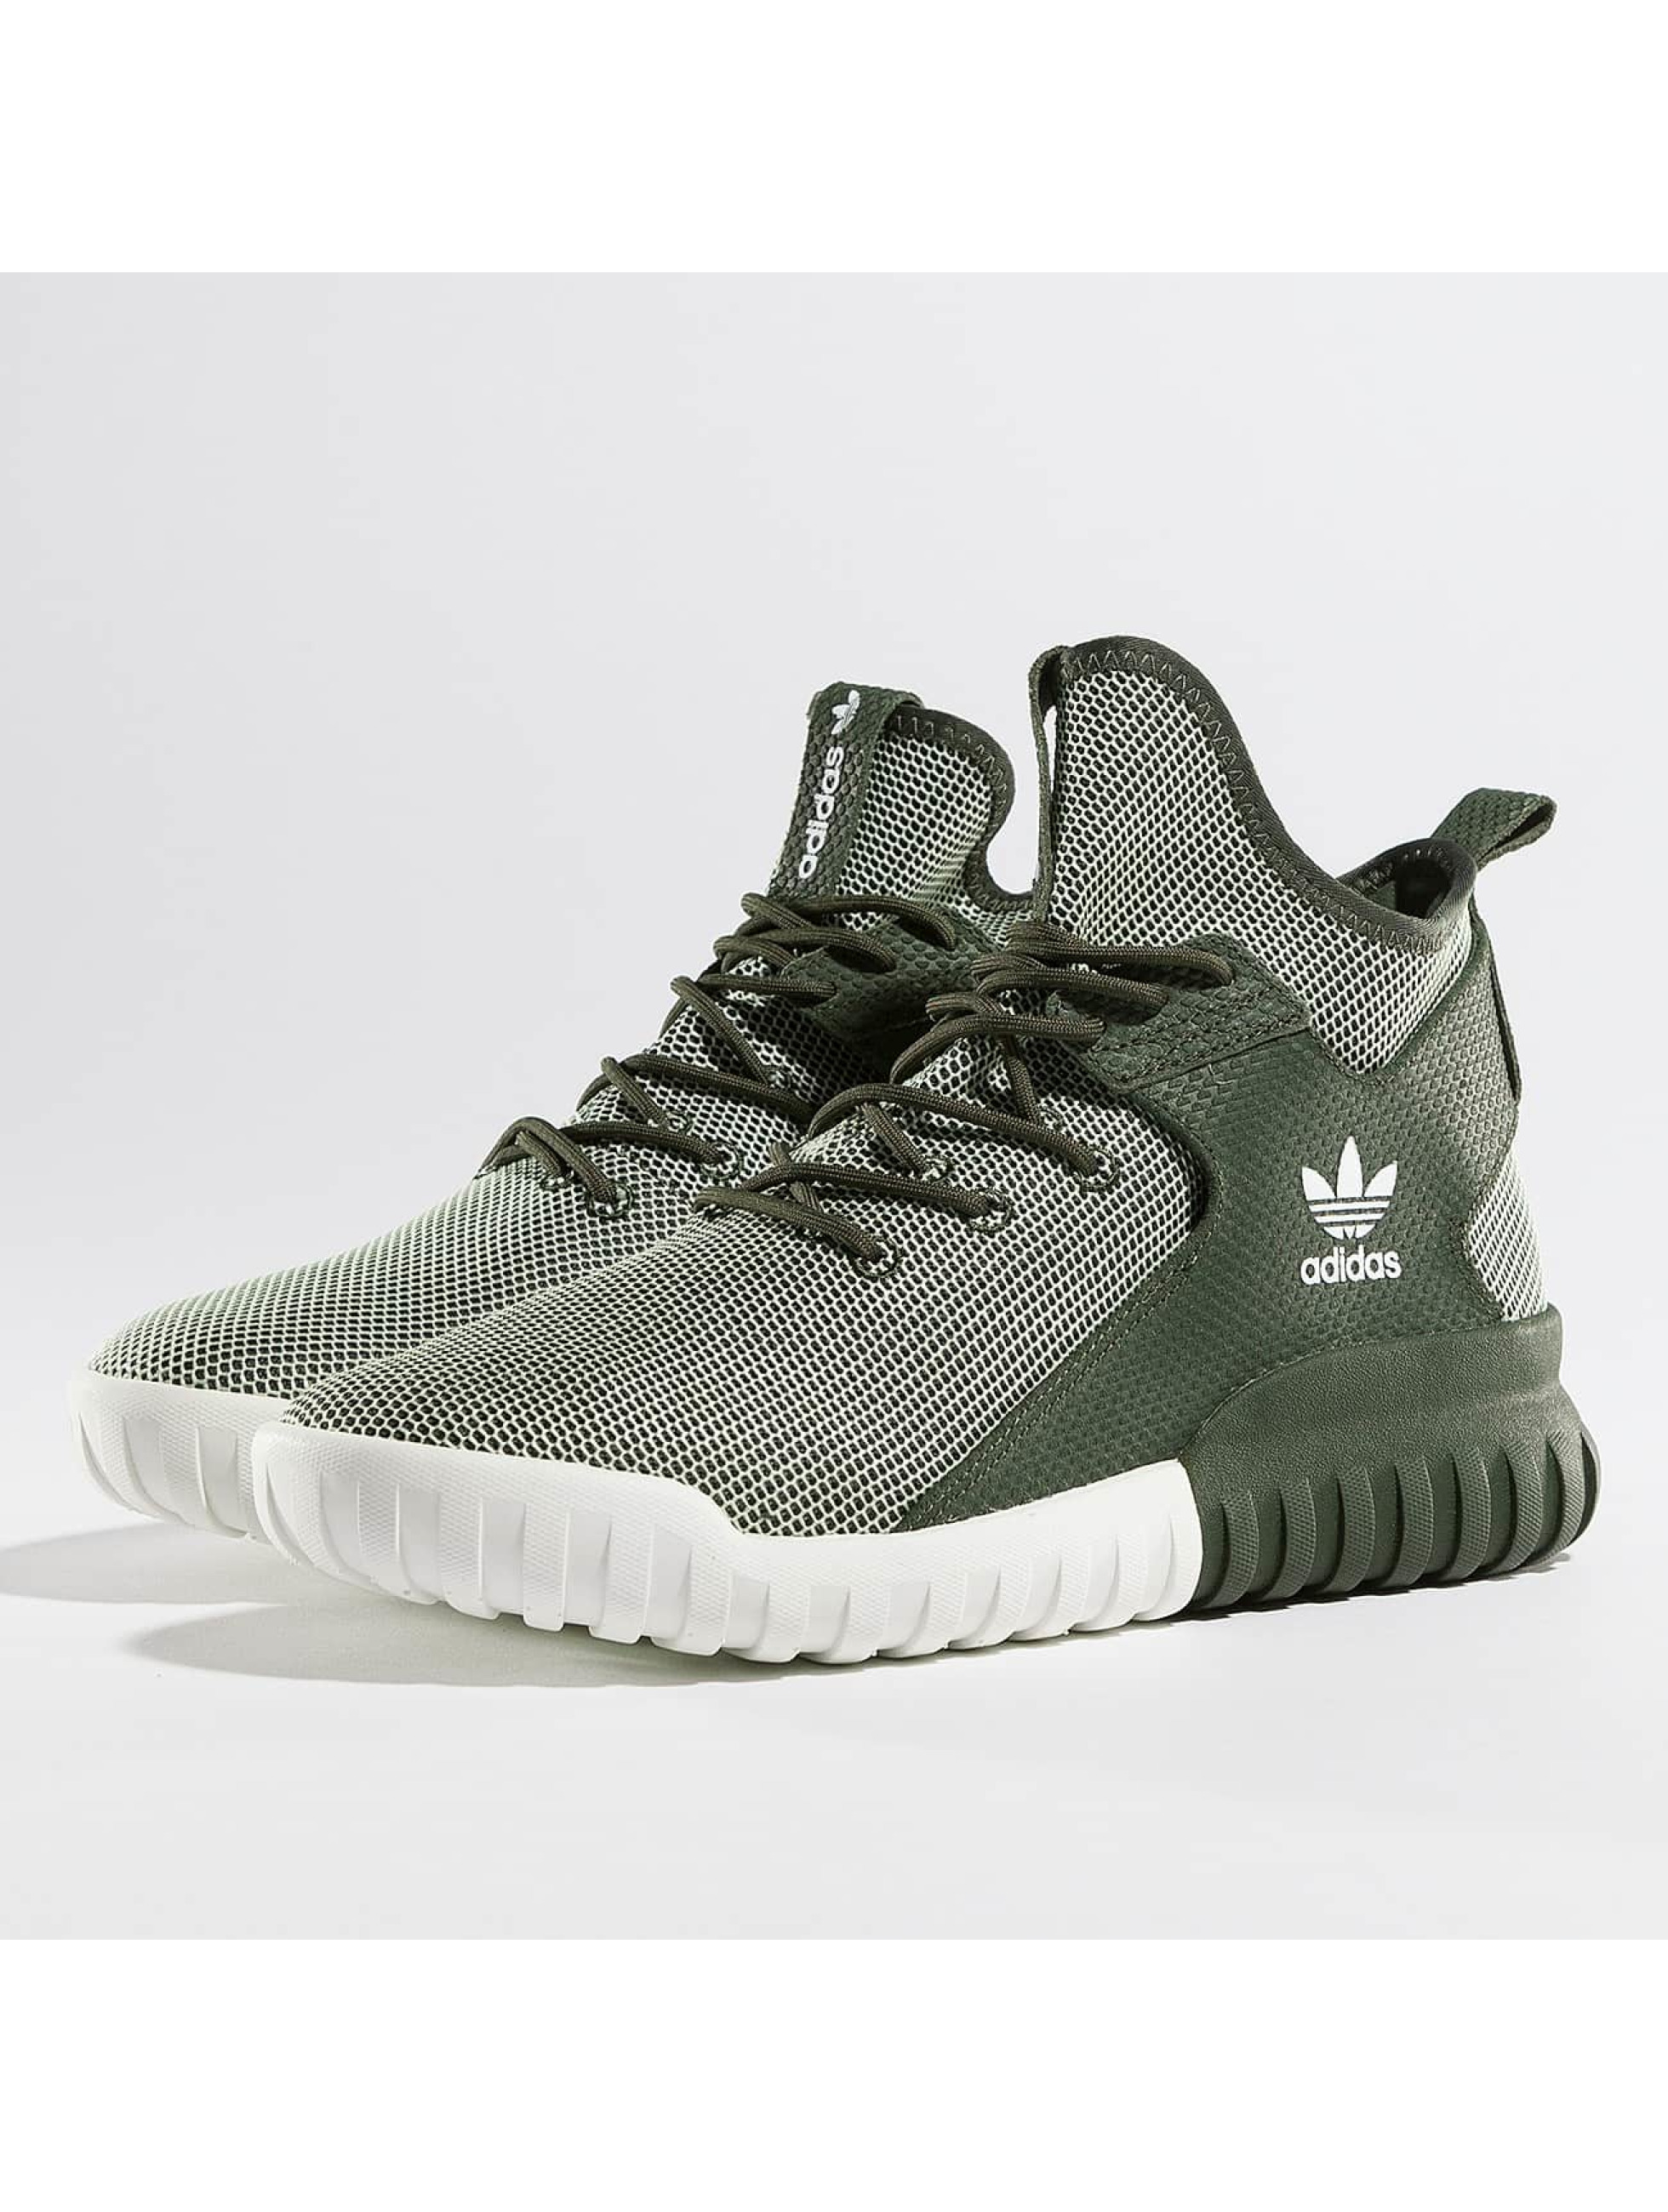 adidas herren sneaker tubular x night in olive 316984. Black Bedroom Furniture Sets. Home Design Ideas